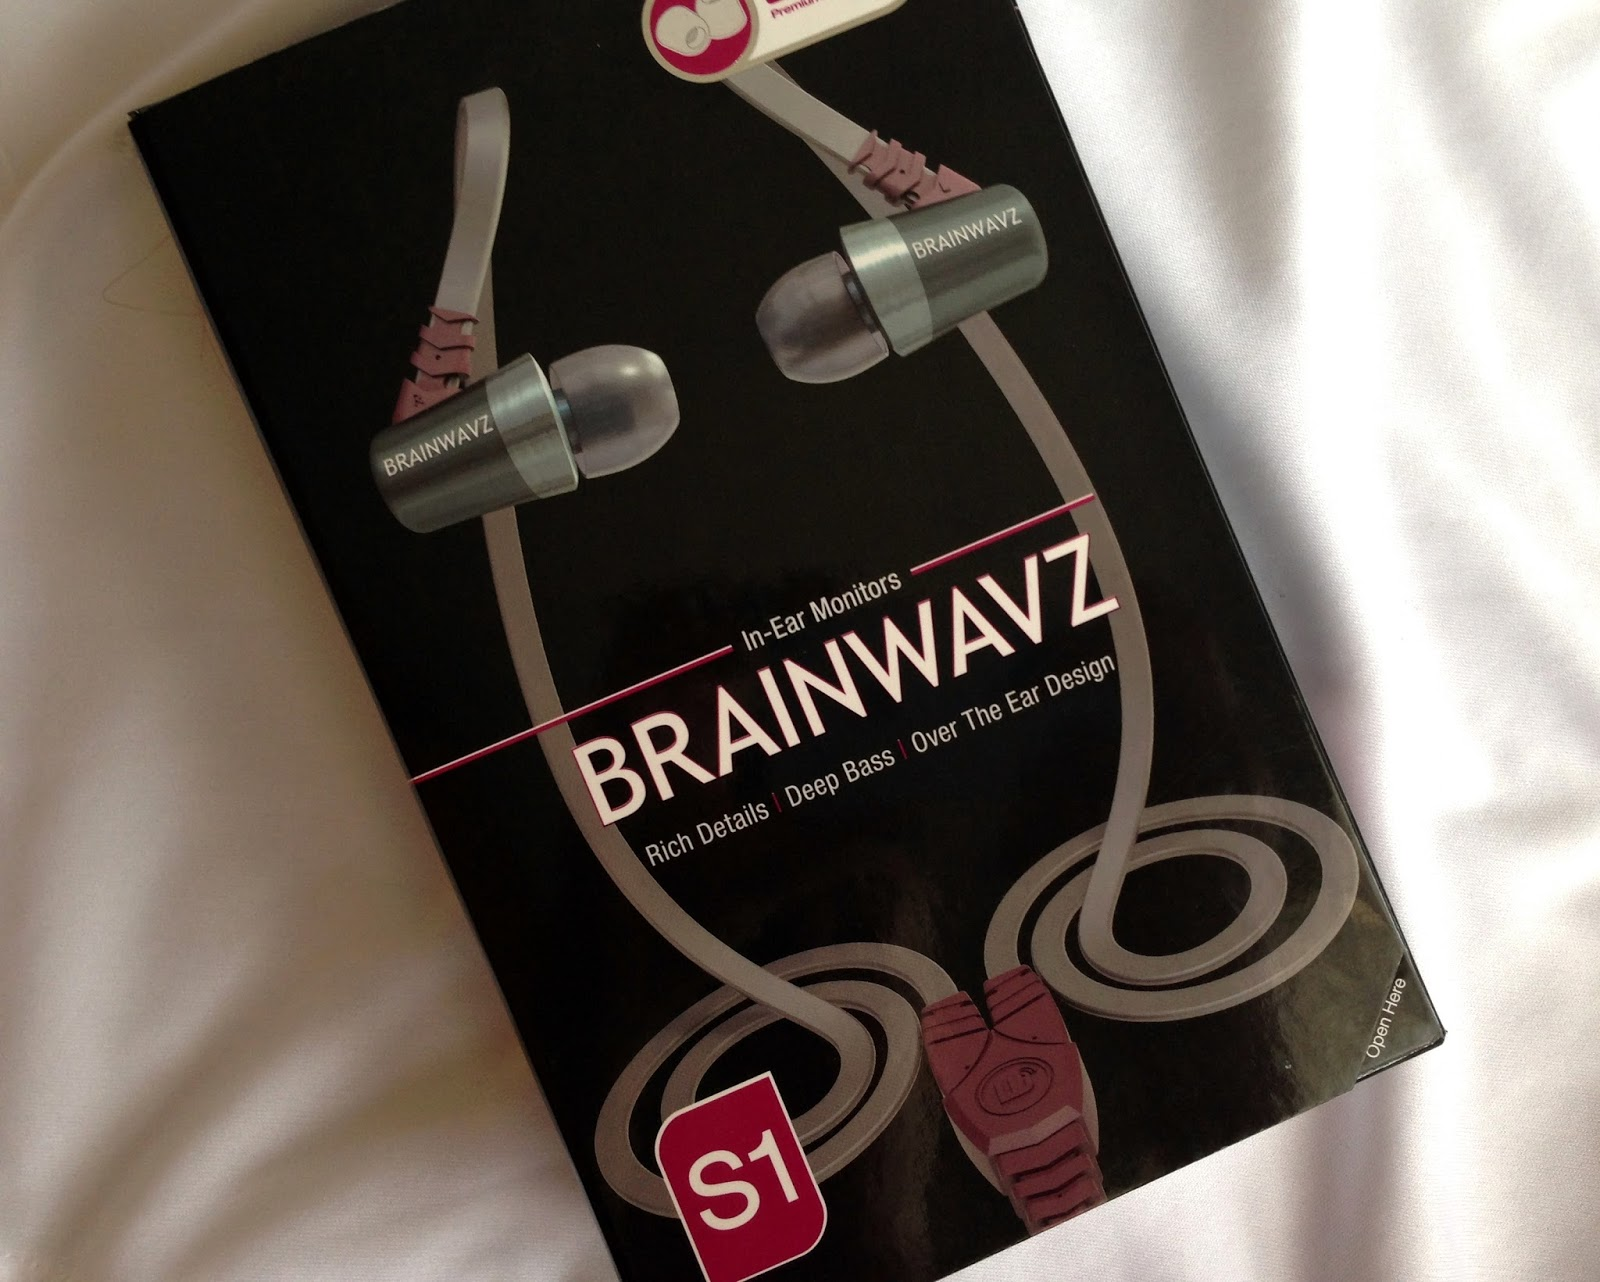 Brainwavs S1 Headphones